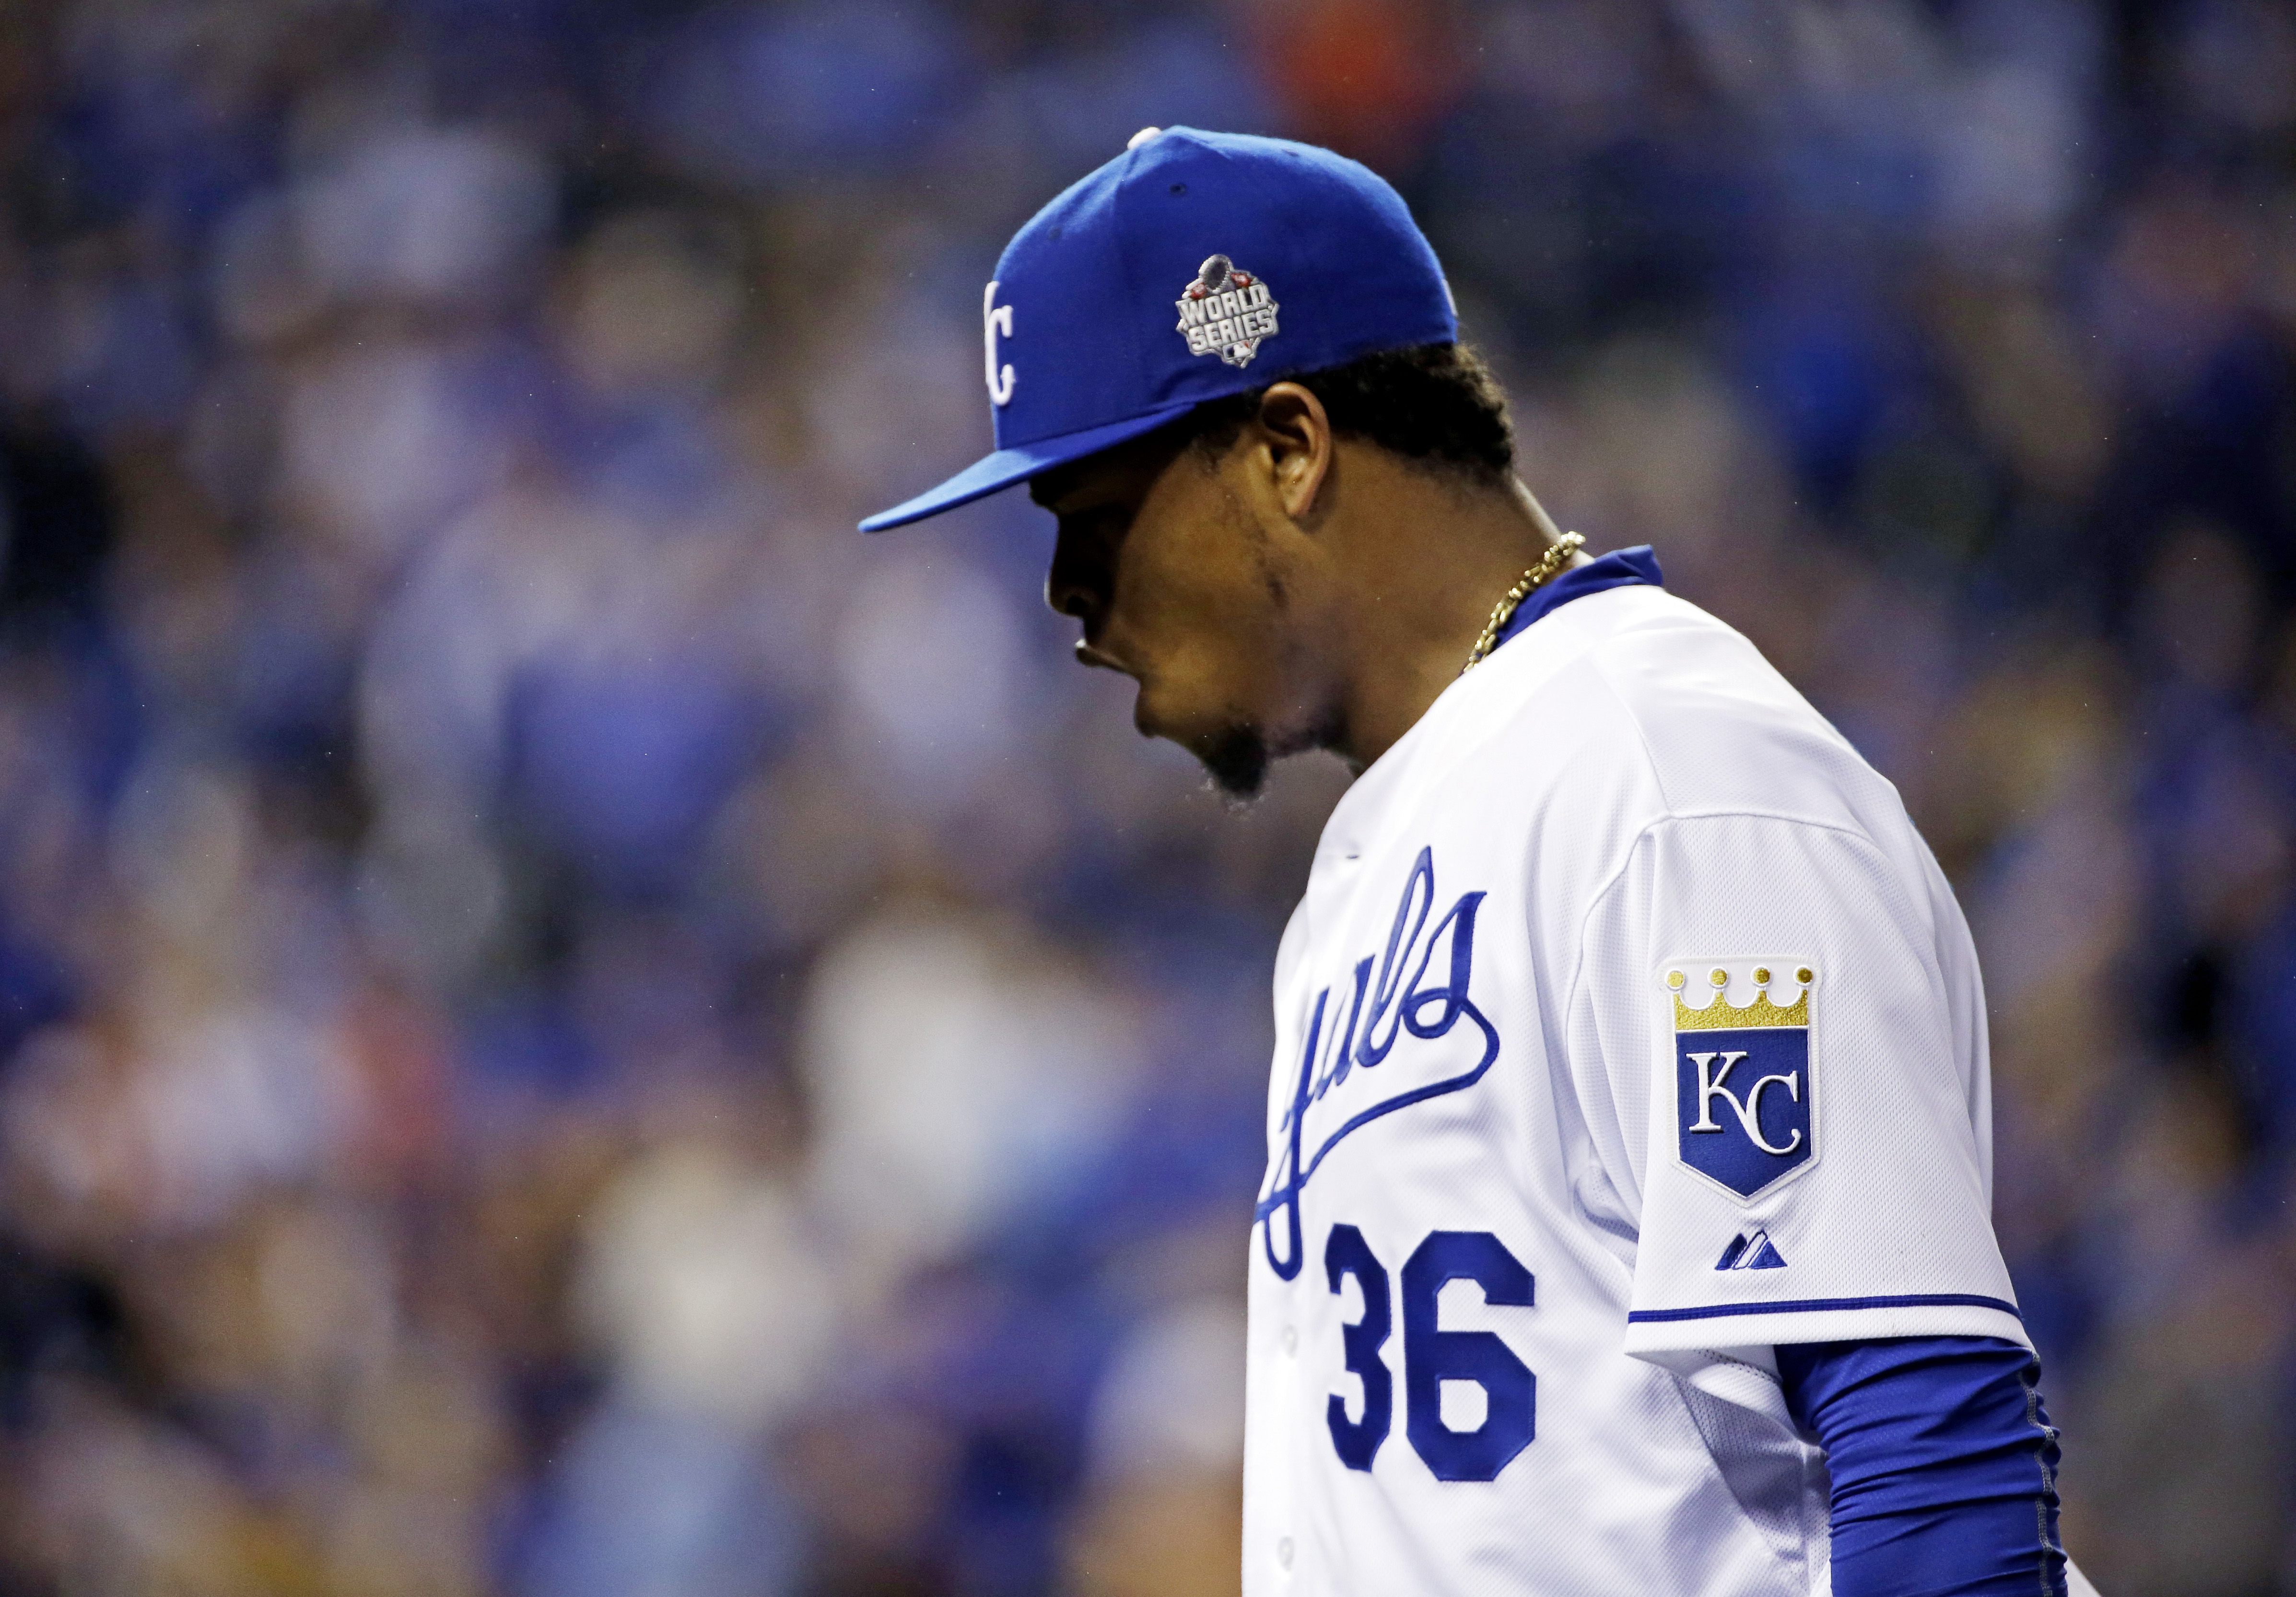 Kansas City Royals pitcher Edinson Volquez reacts during the fifth inning of Game 1 of the Major League Baseball World Series against the New York Mets Tuesday, Oct. 27, 2015, in Kansas City, Mo. New York Mets' Curtis Granderson hit a home run in the inni